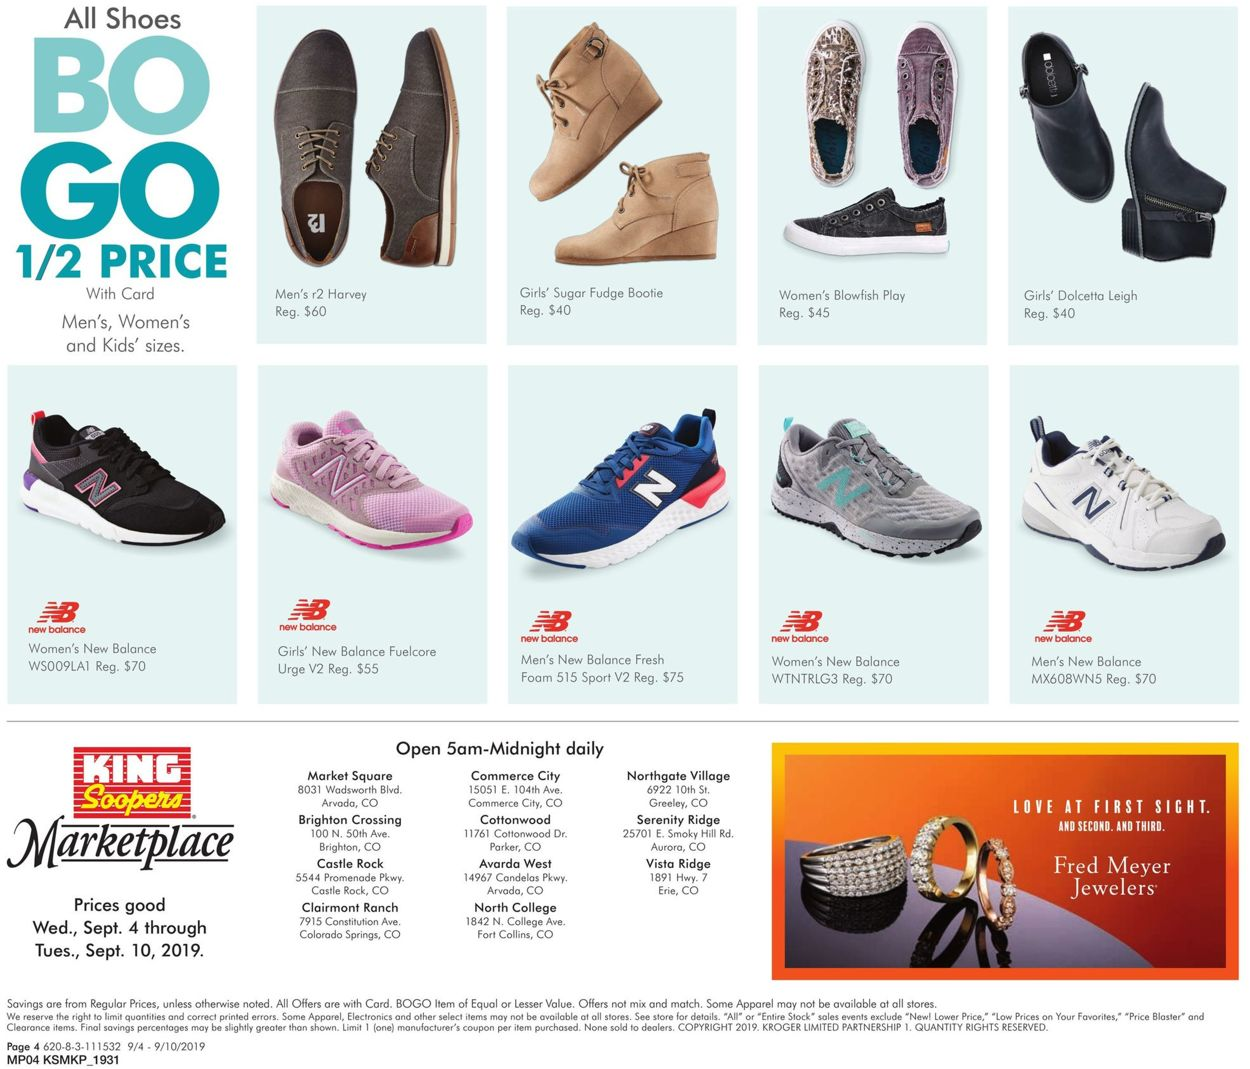 King Soopers Current weekly ad 09/04